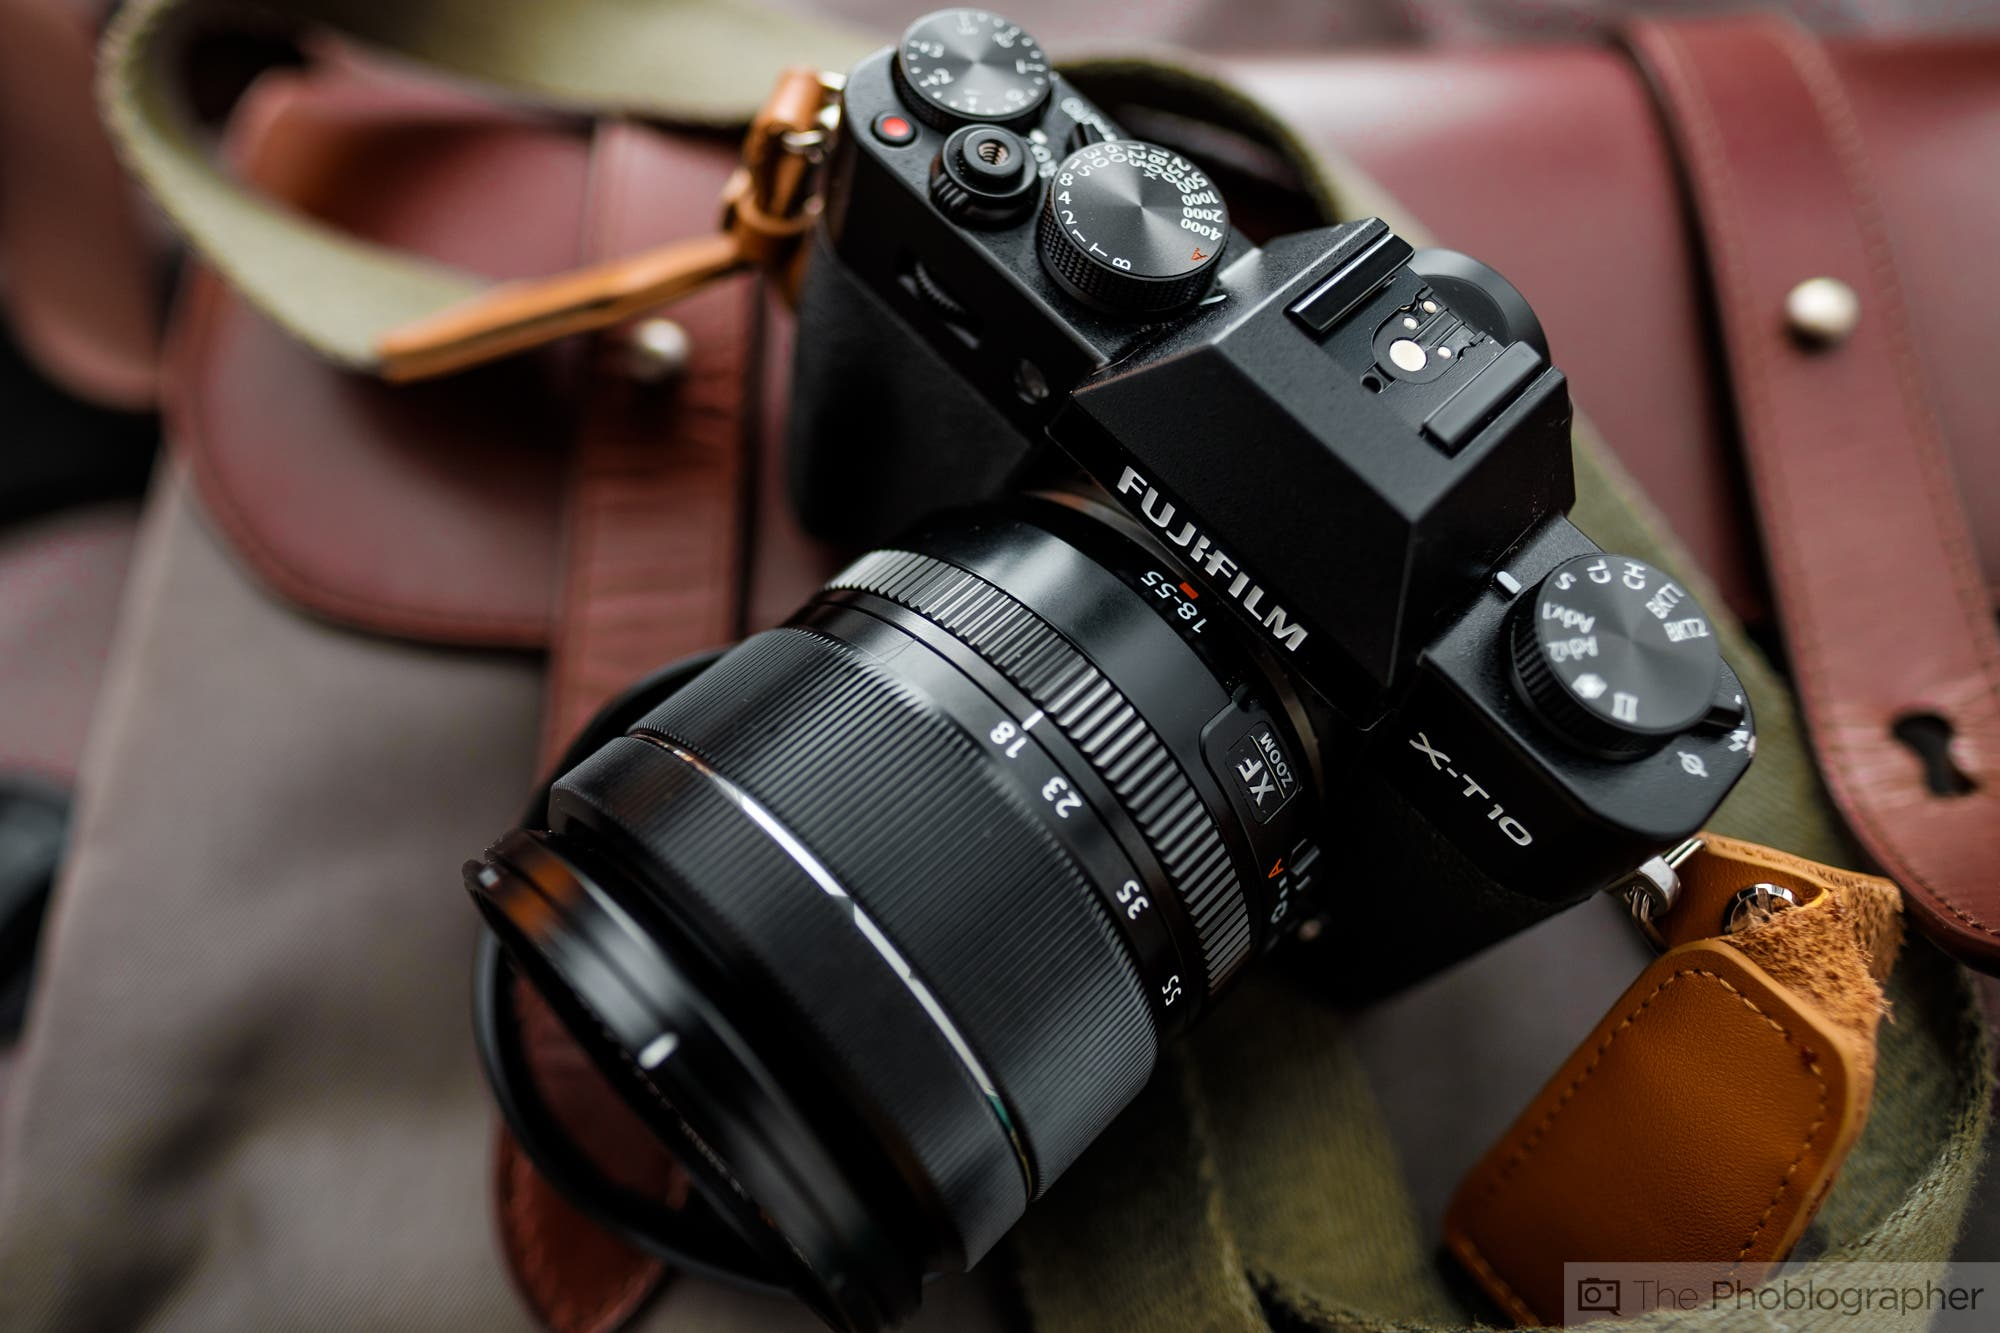 The Best Photography and Cameras Deals for Cyber Monday 2016